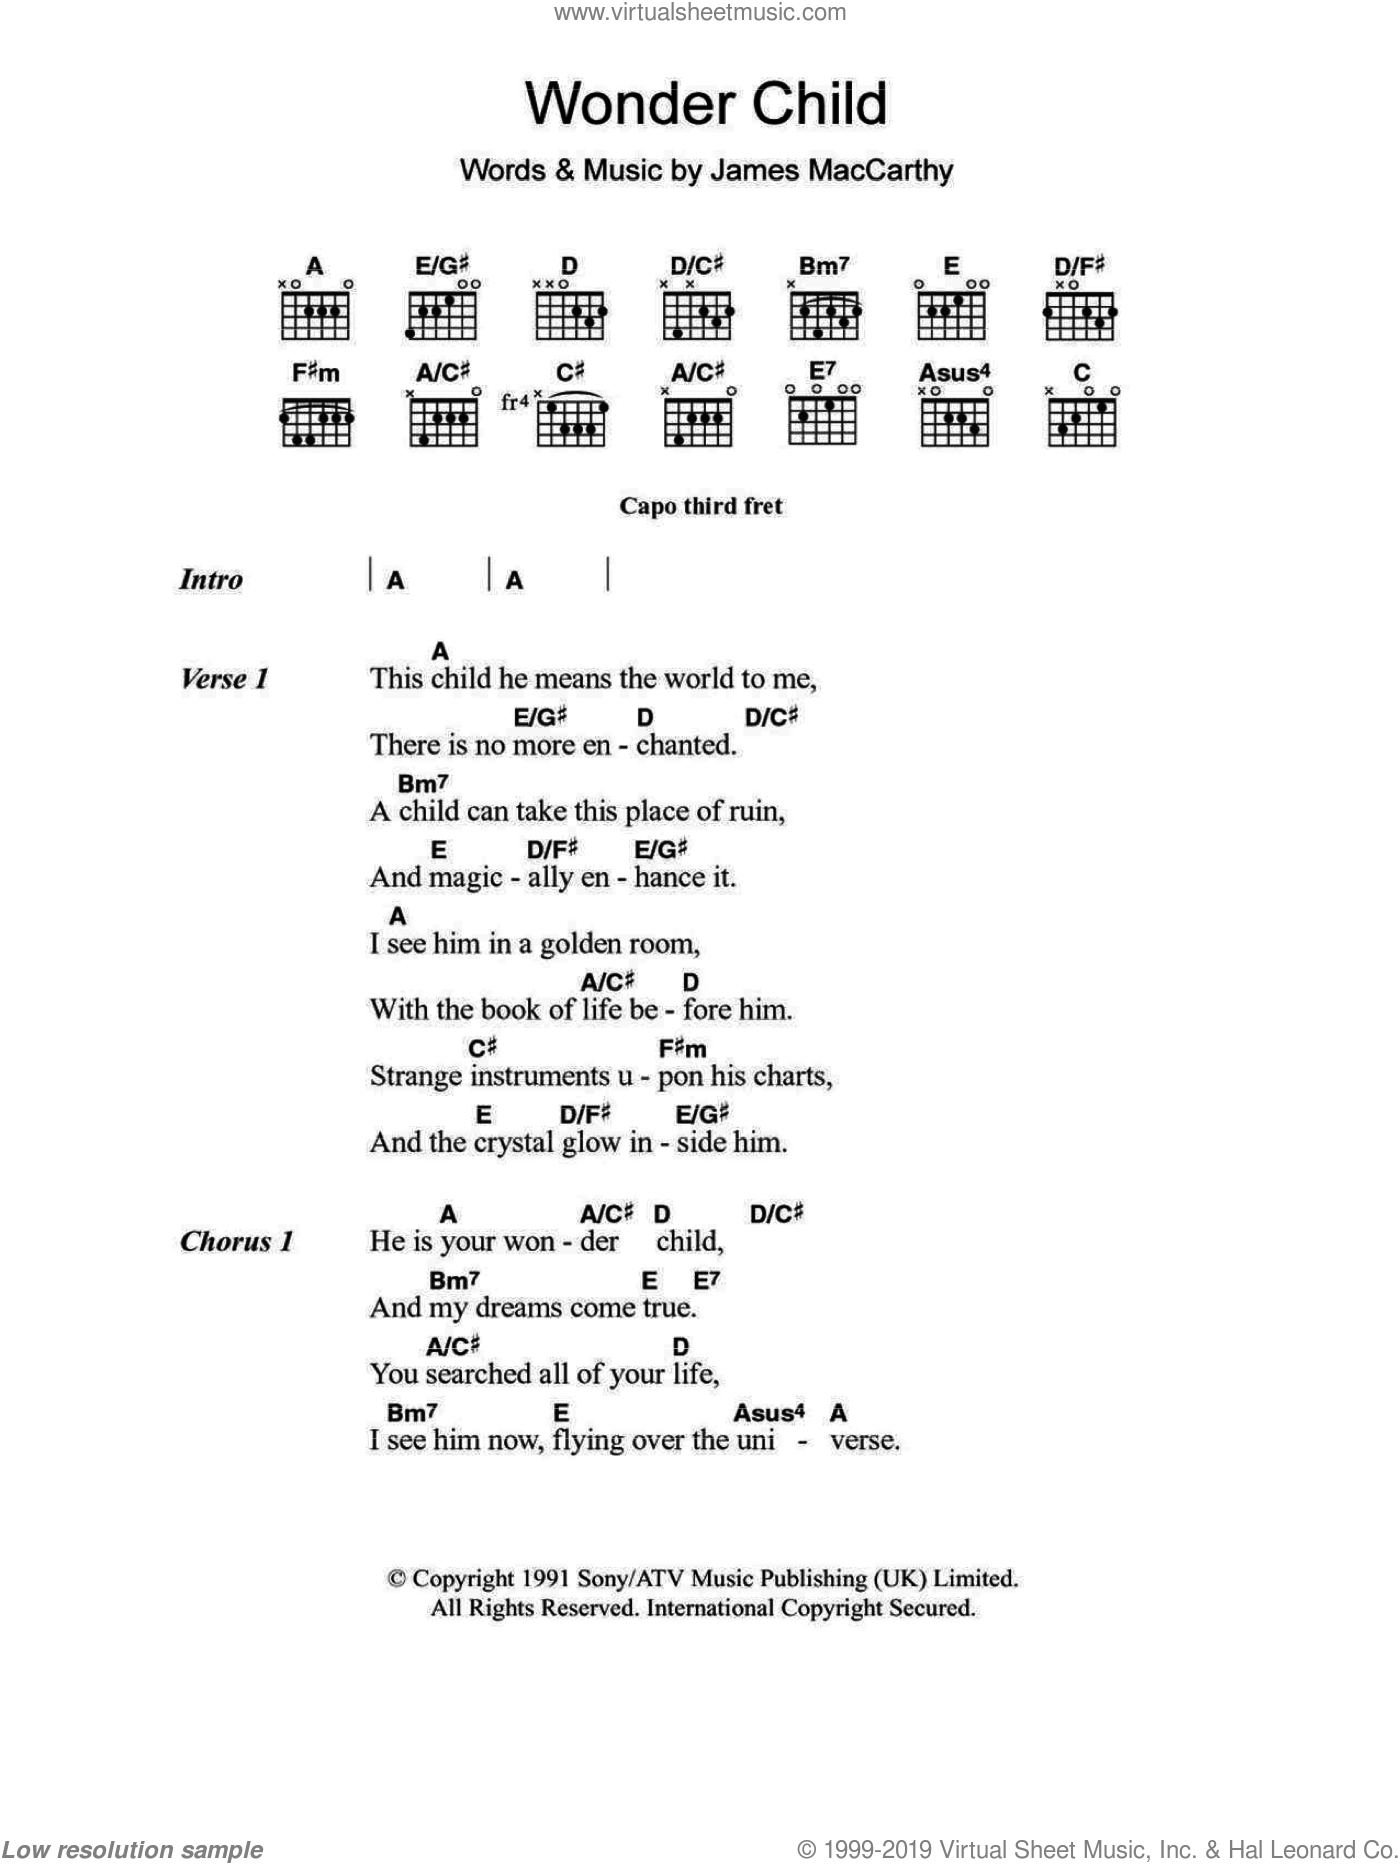 Wonder Child sheet music for guitar (chords, lyrics, melody) by Jimmy MacCarthy